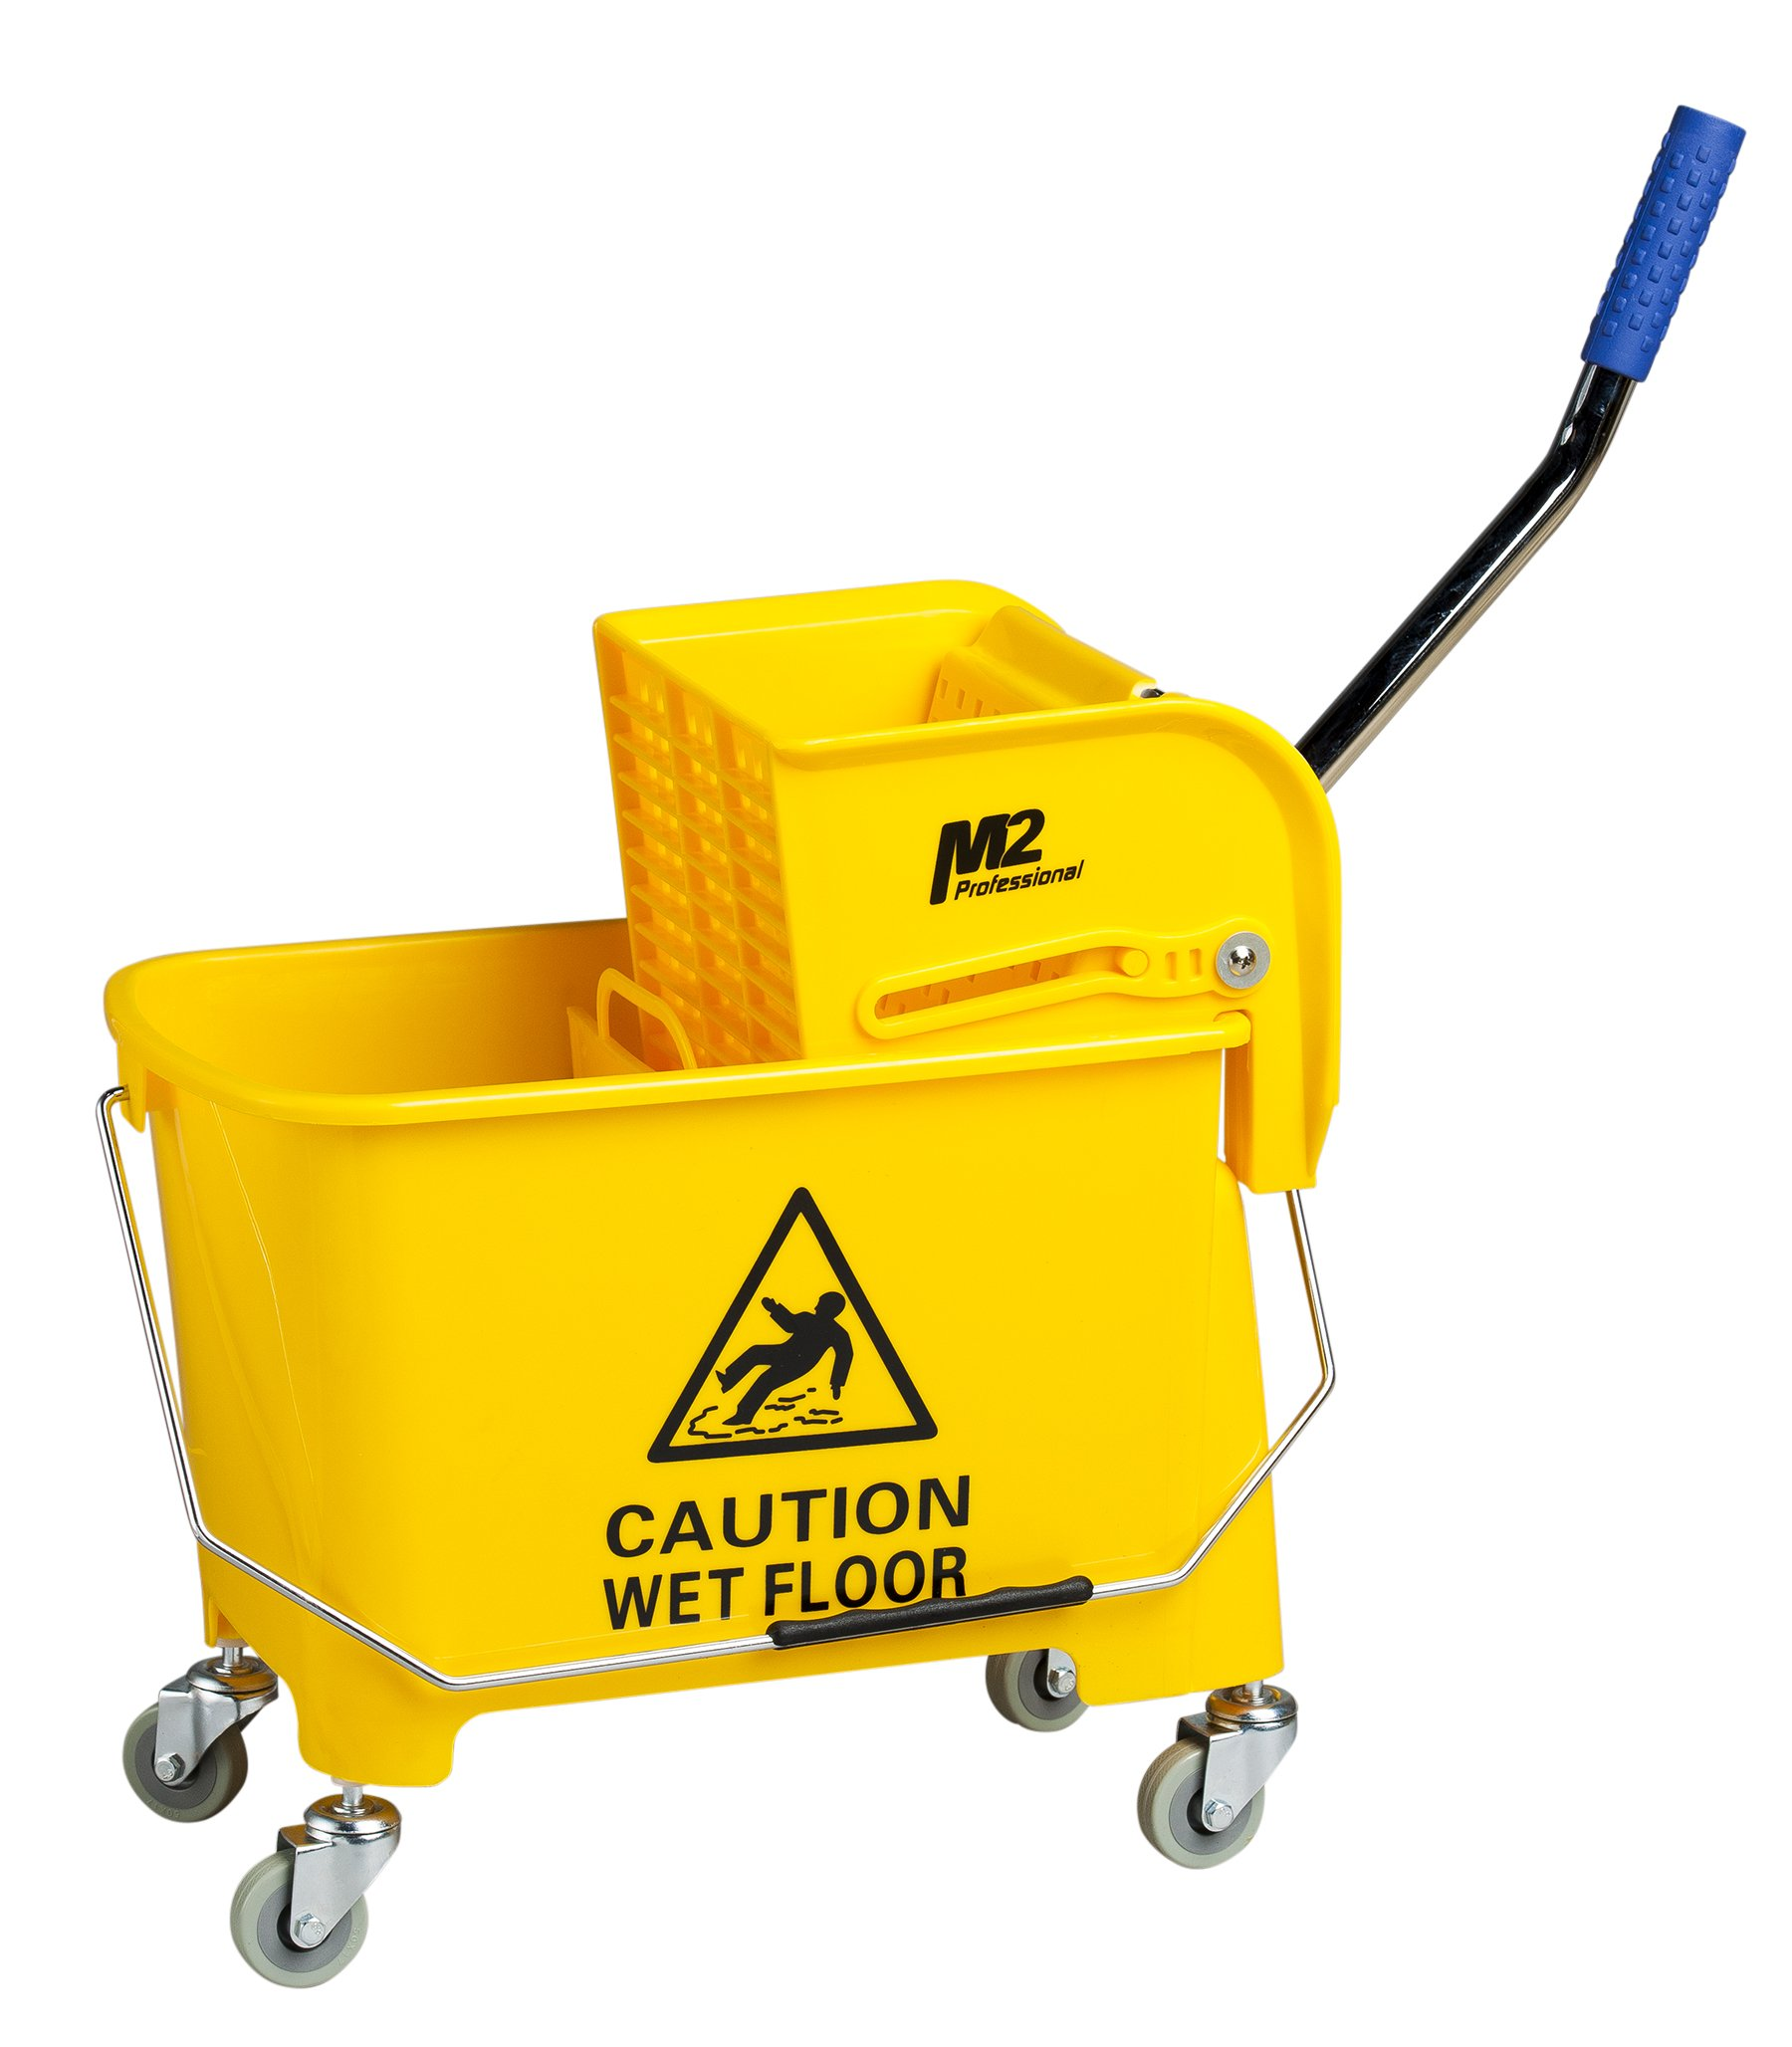 M2 Professional Junior Commercial Mop Bucket with Side Press Wringer and Wheels, 23 Quart/6 Gallon Capacity - Yellow